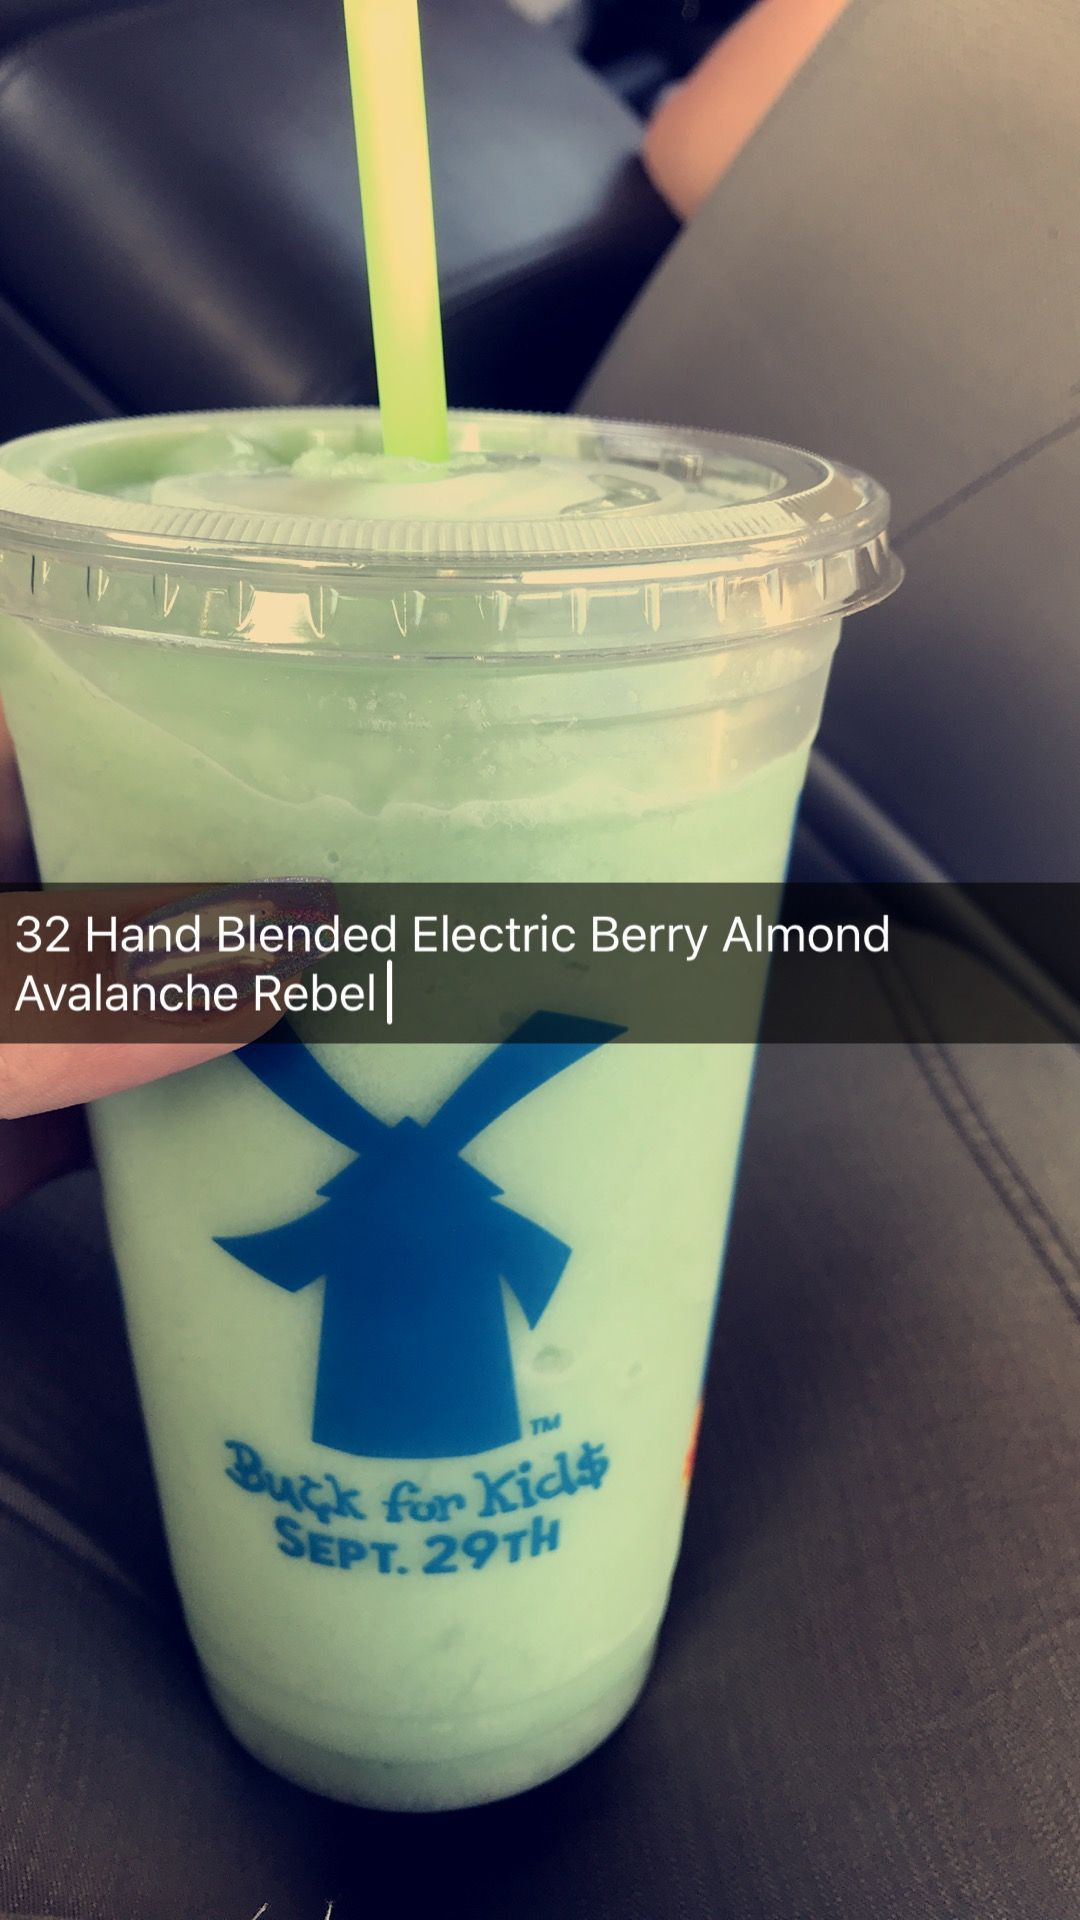 Dutch Bros 32oz Hand Blended Electric Berry Almond Avalanche Rebel energy drink #dutchbros #rebel #drinks #caffine #db #dutchbros Dutch Bros 32oz Hand Blended Electric Berry Almond Avalanche Rebel energy drink #dutchbros #rebel #drinks #caffine #db #dutchbros